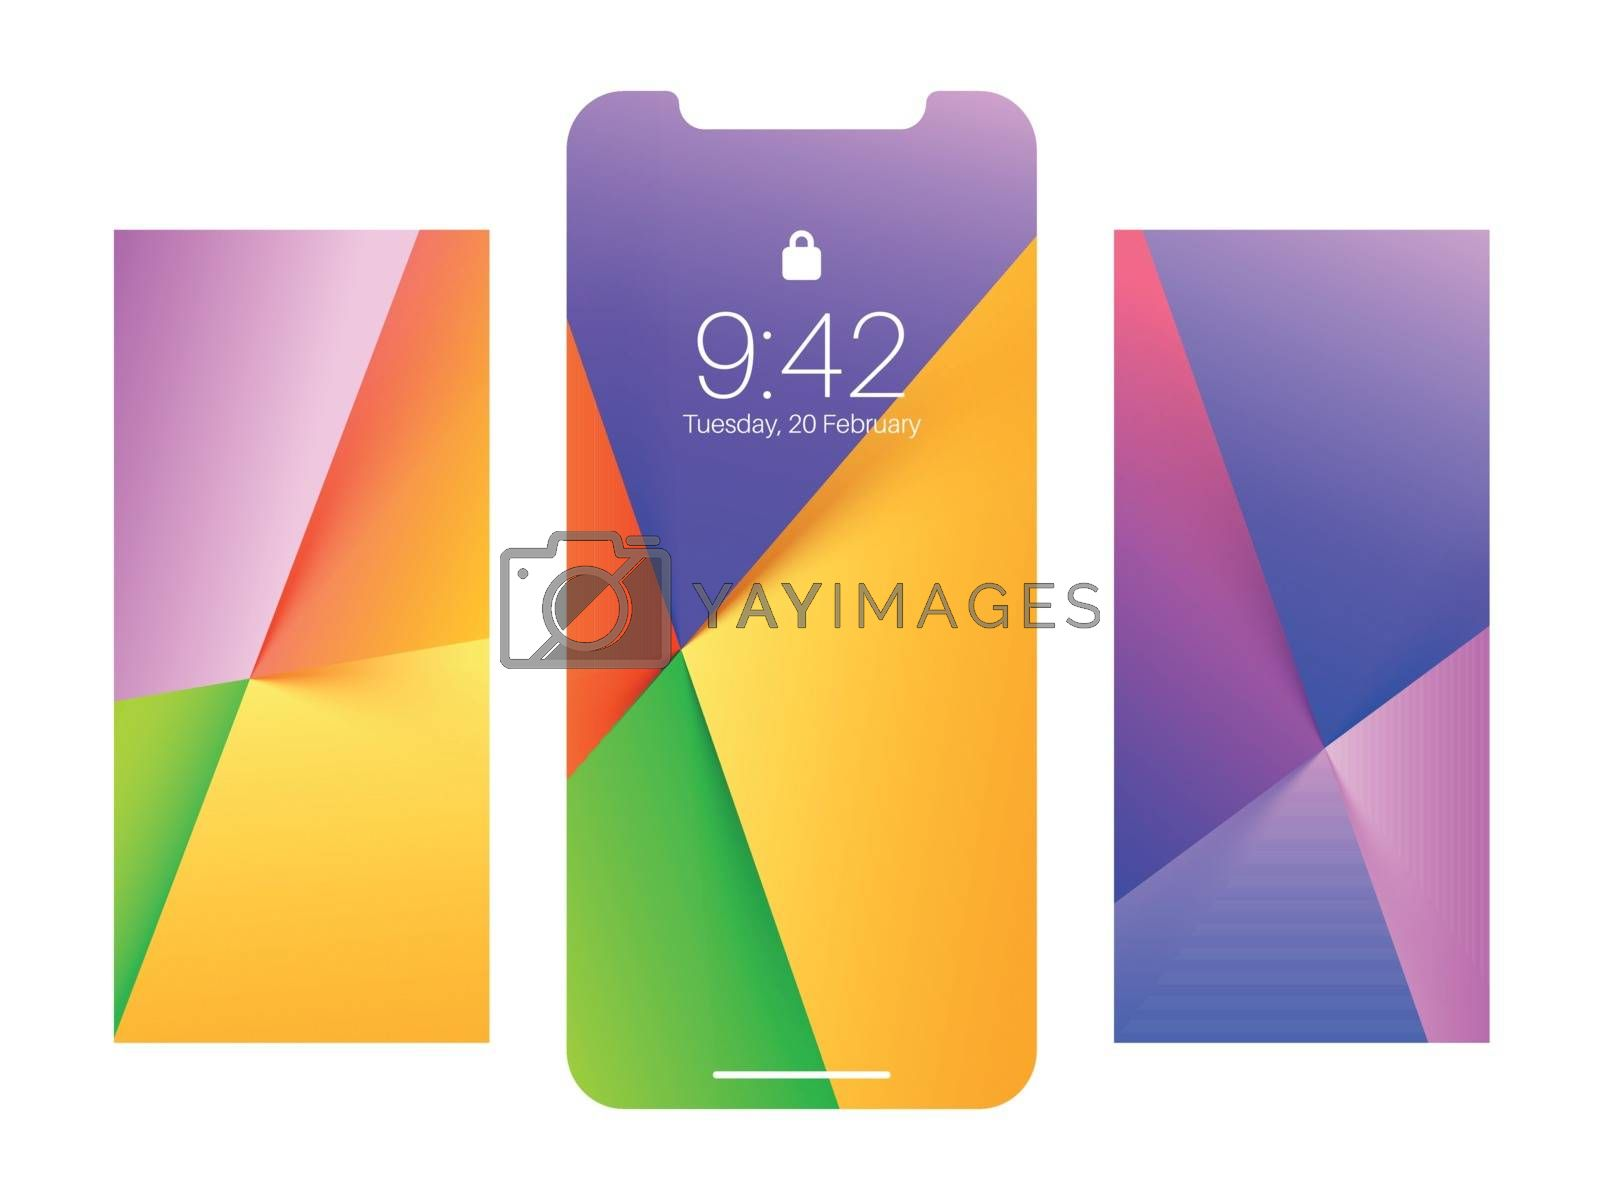 Mobile screen lock display with abstract modern wallpaper designs.